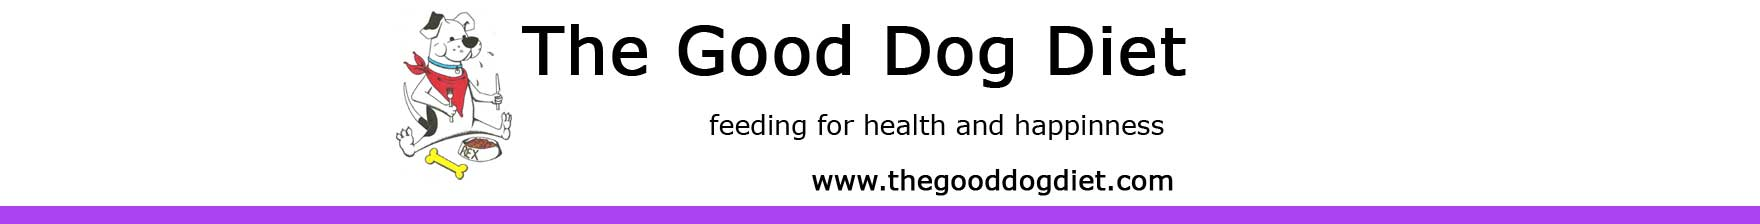 The Good Dog Diet, Book on Diet and Behaviour